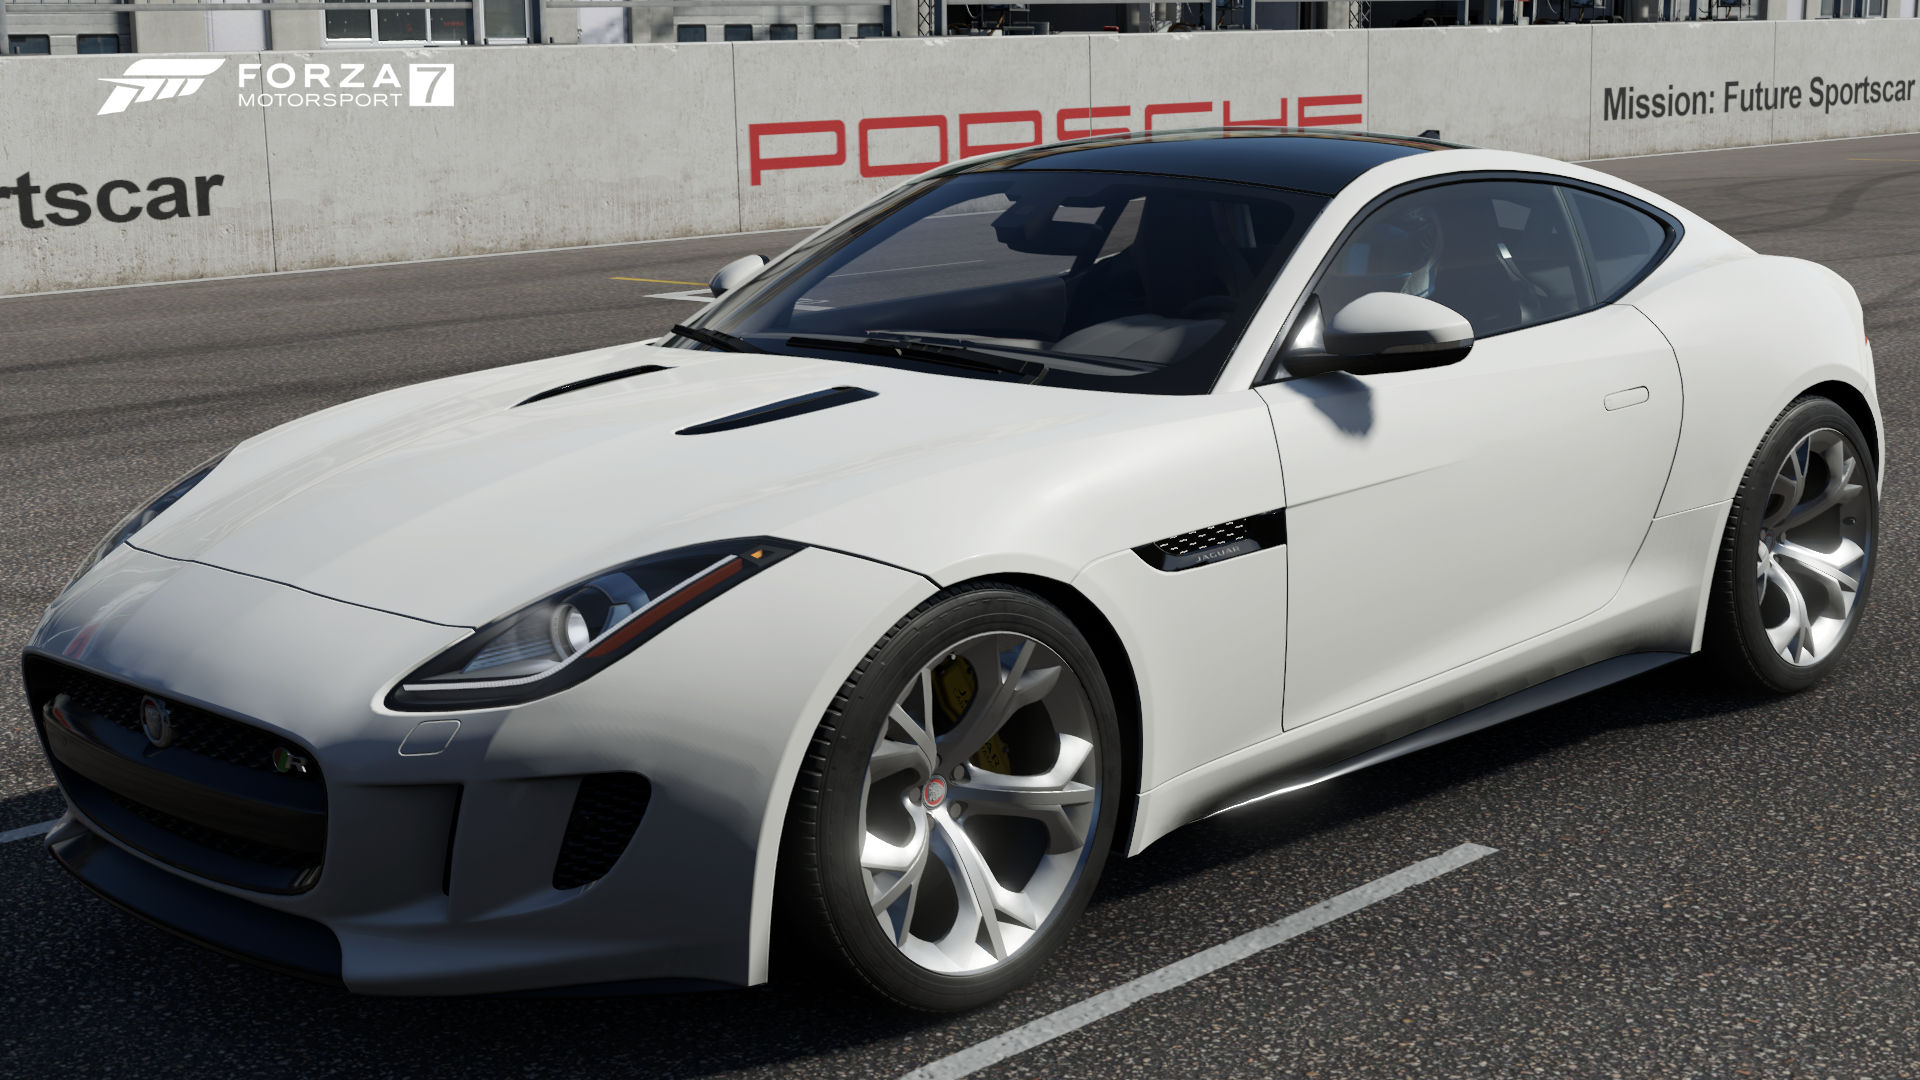 jaguar f type r coup forza motorsport wiki fandom powered by wikia. Black Bedroom Furniture Sets. Home Design Ideas